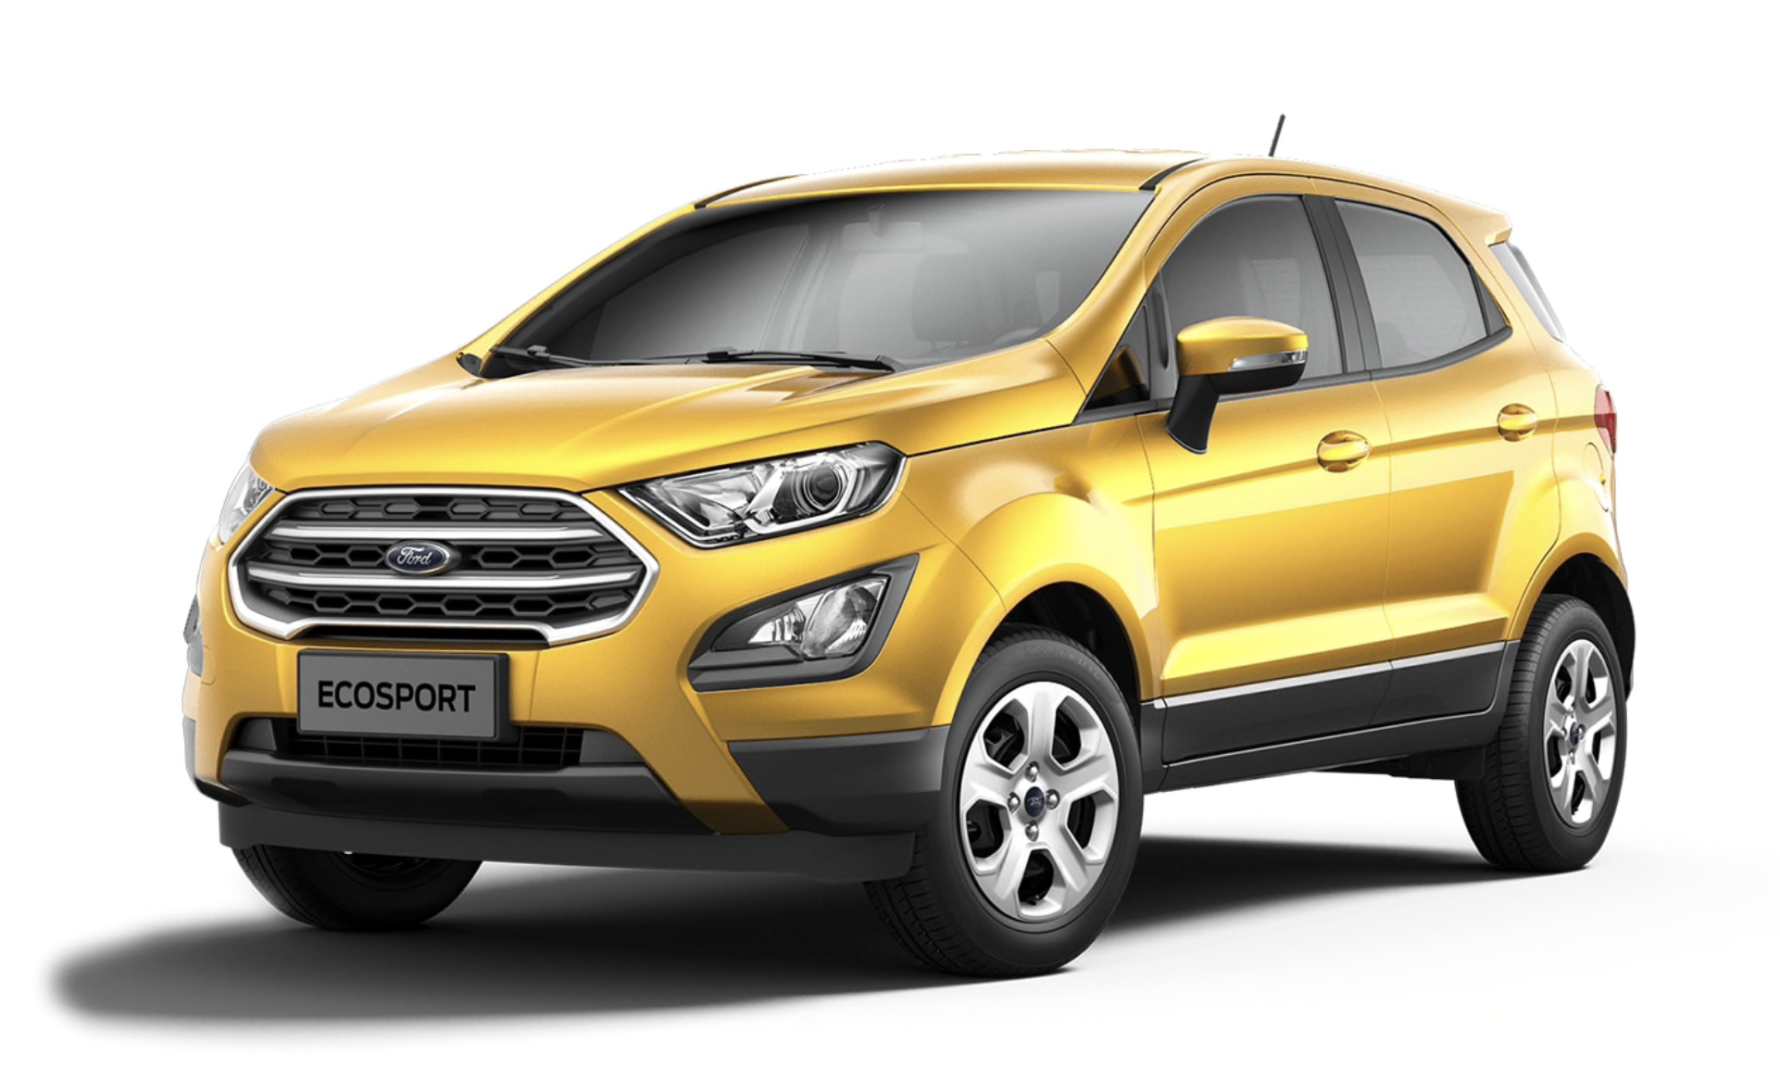 ford ecosport - FORD ECOSPORT 1.0 Ecoboost 100 cv Plus